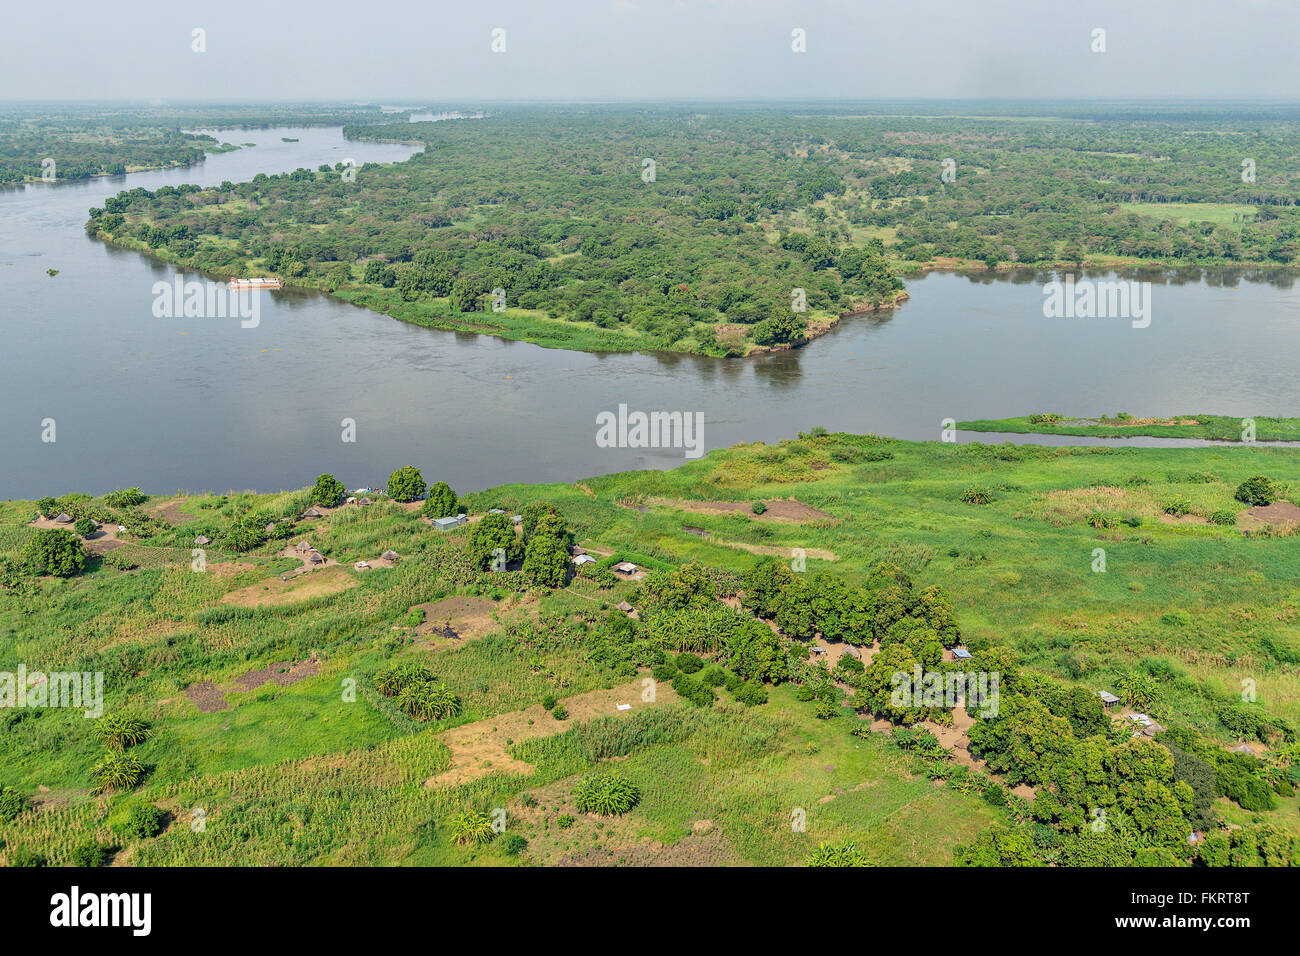 Aerial view of Nile river near Juba, the capital of South Sudan. - Stock Image